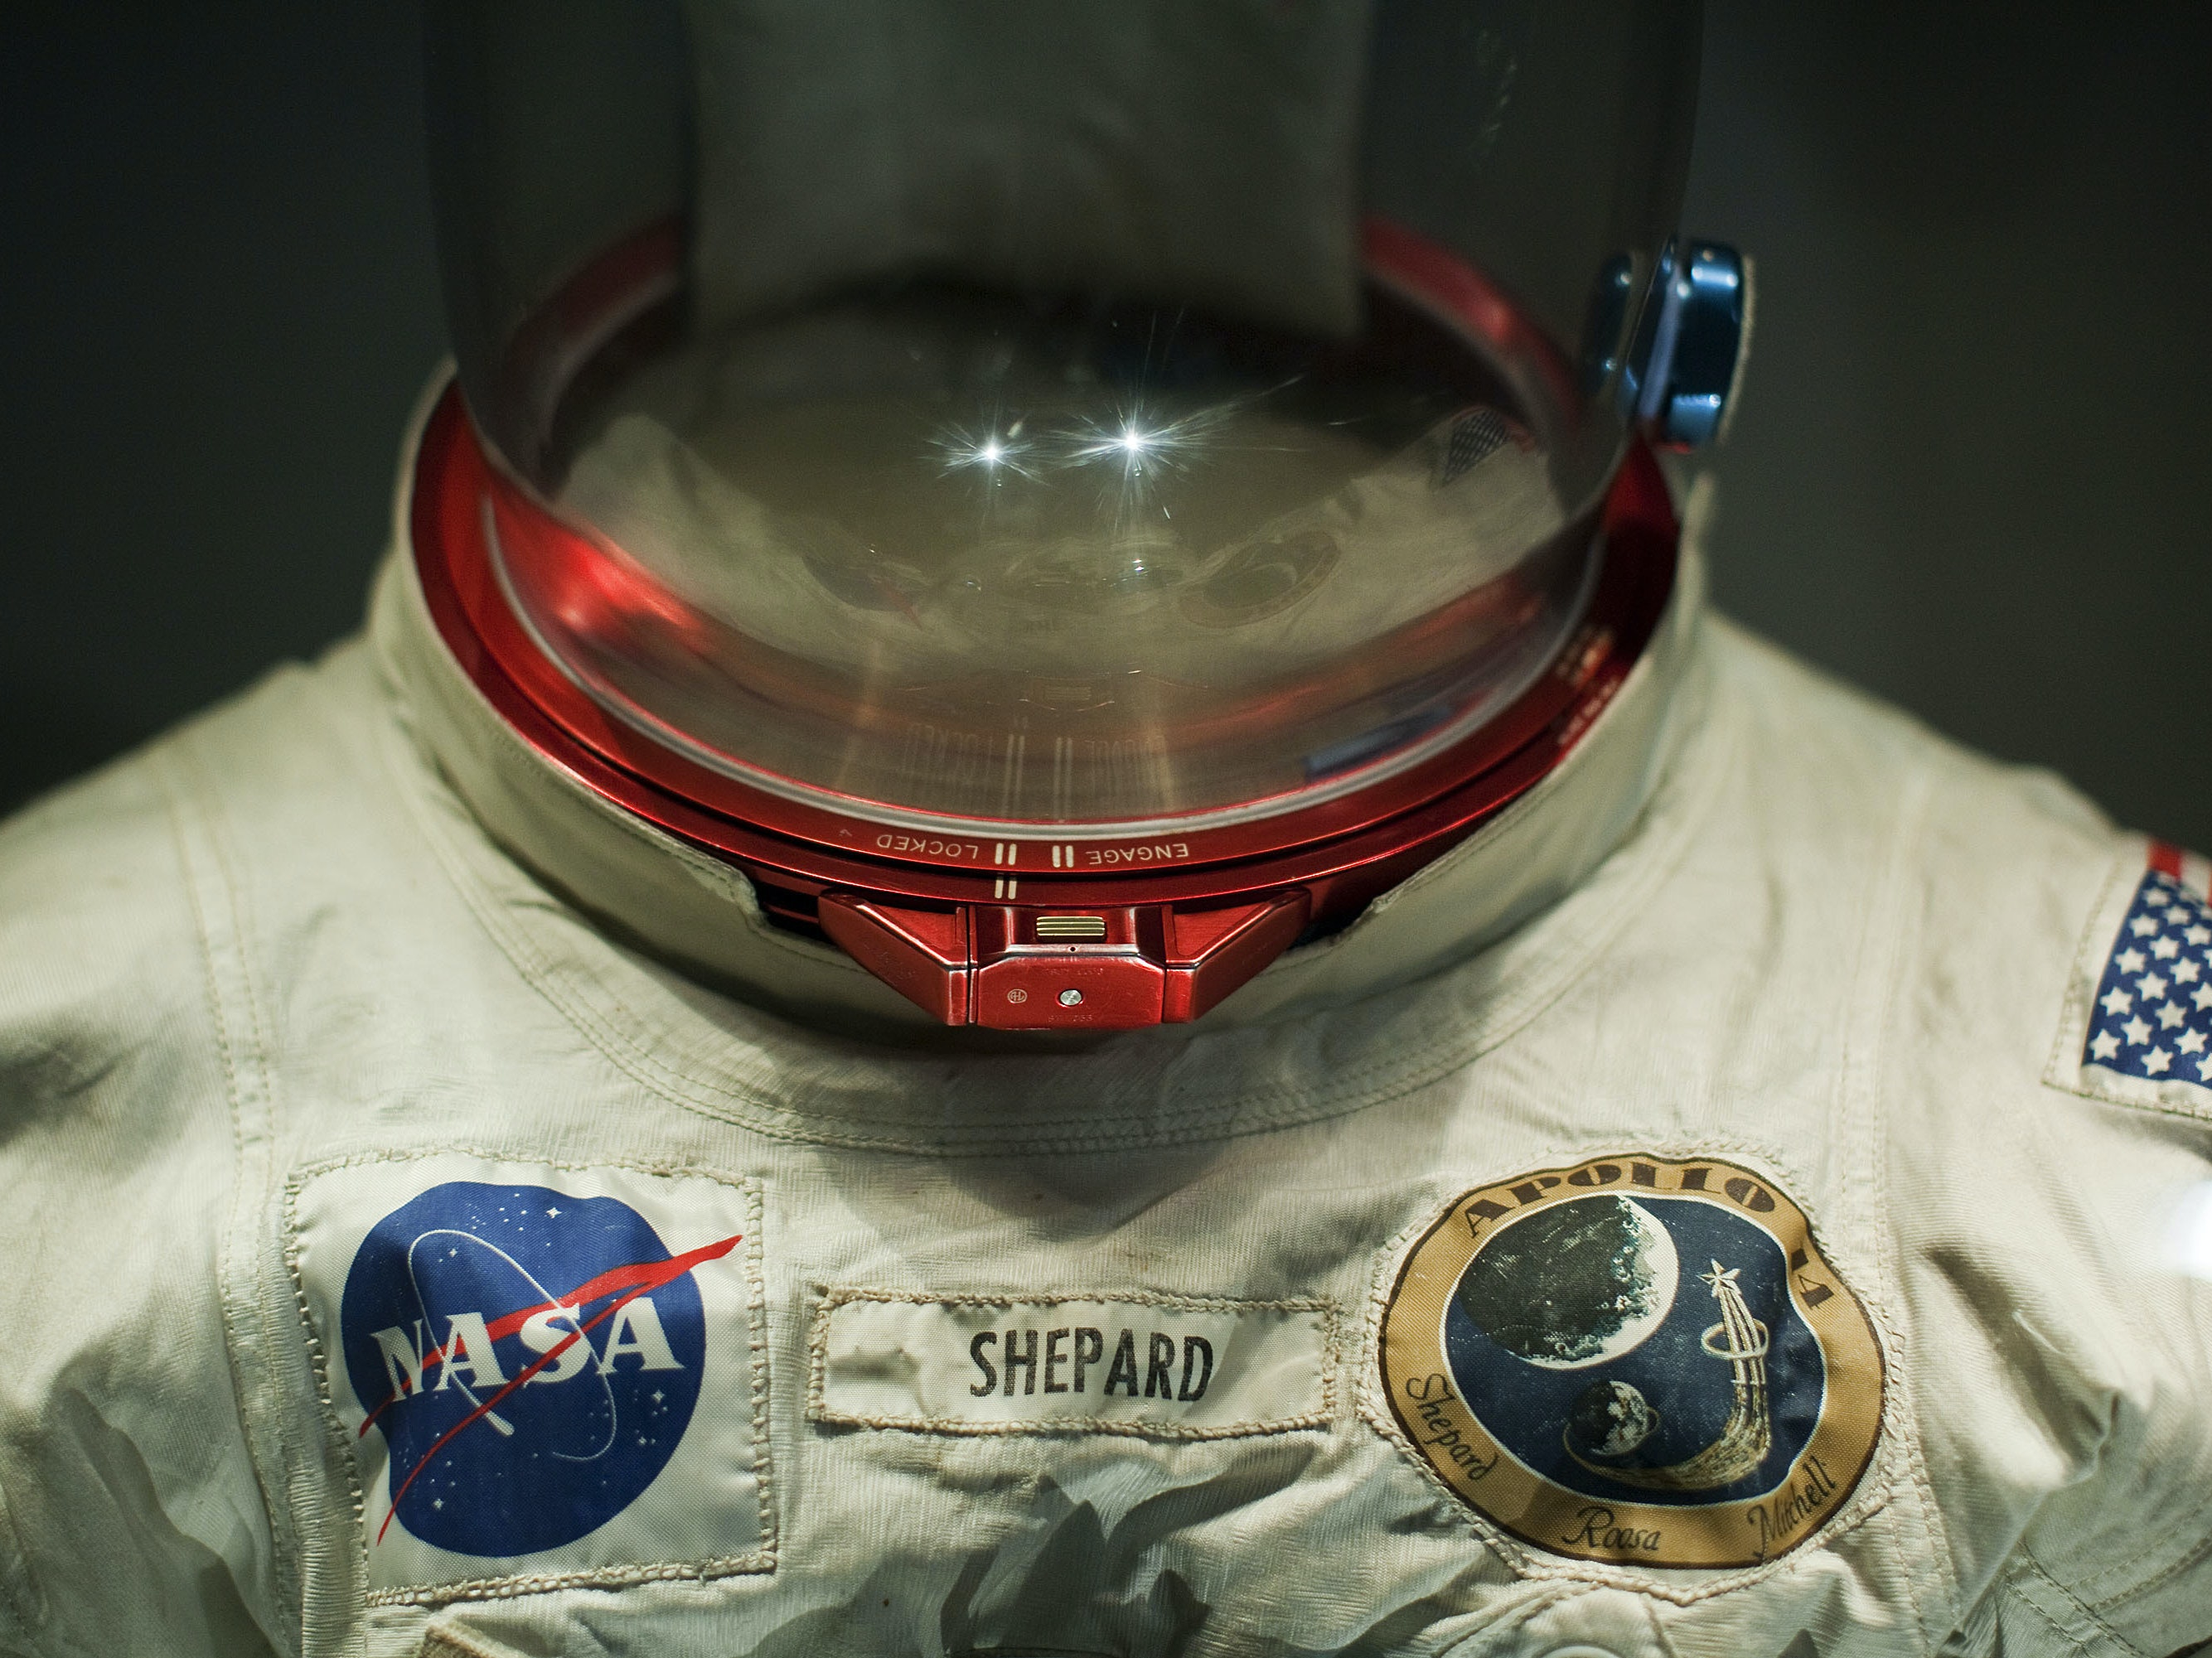 Alan Shepard's Mercury Mission Is Carried on by Blue Origin 55 Years Later